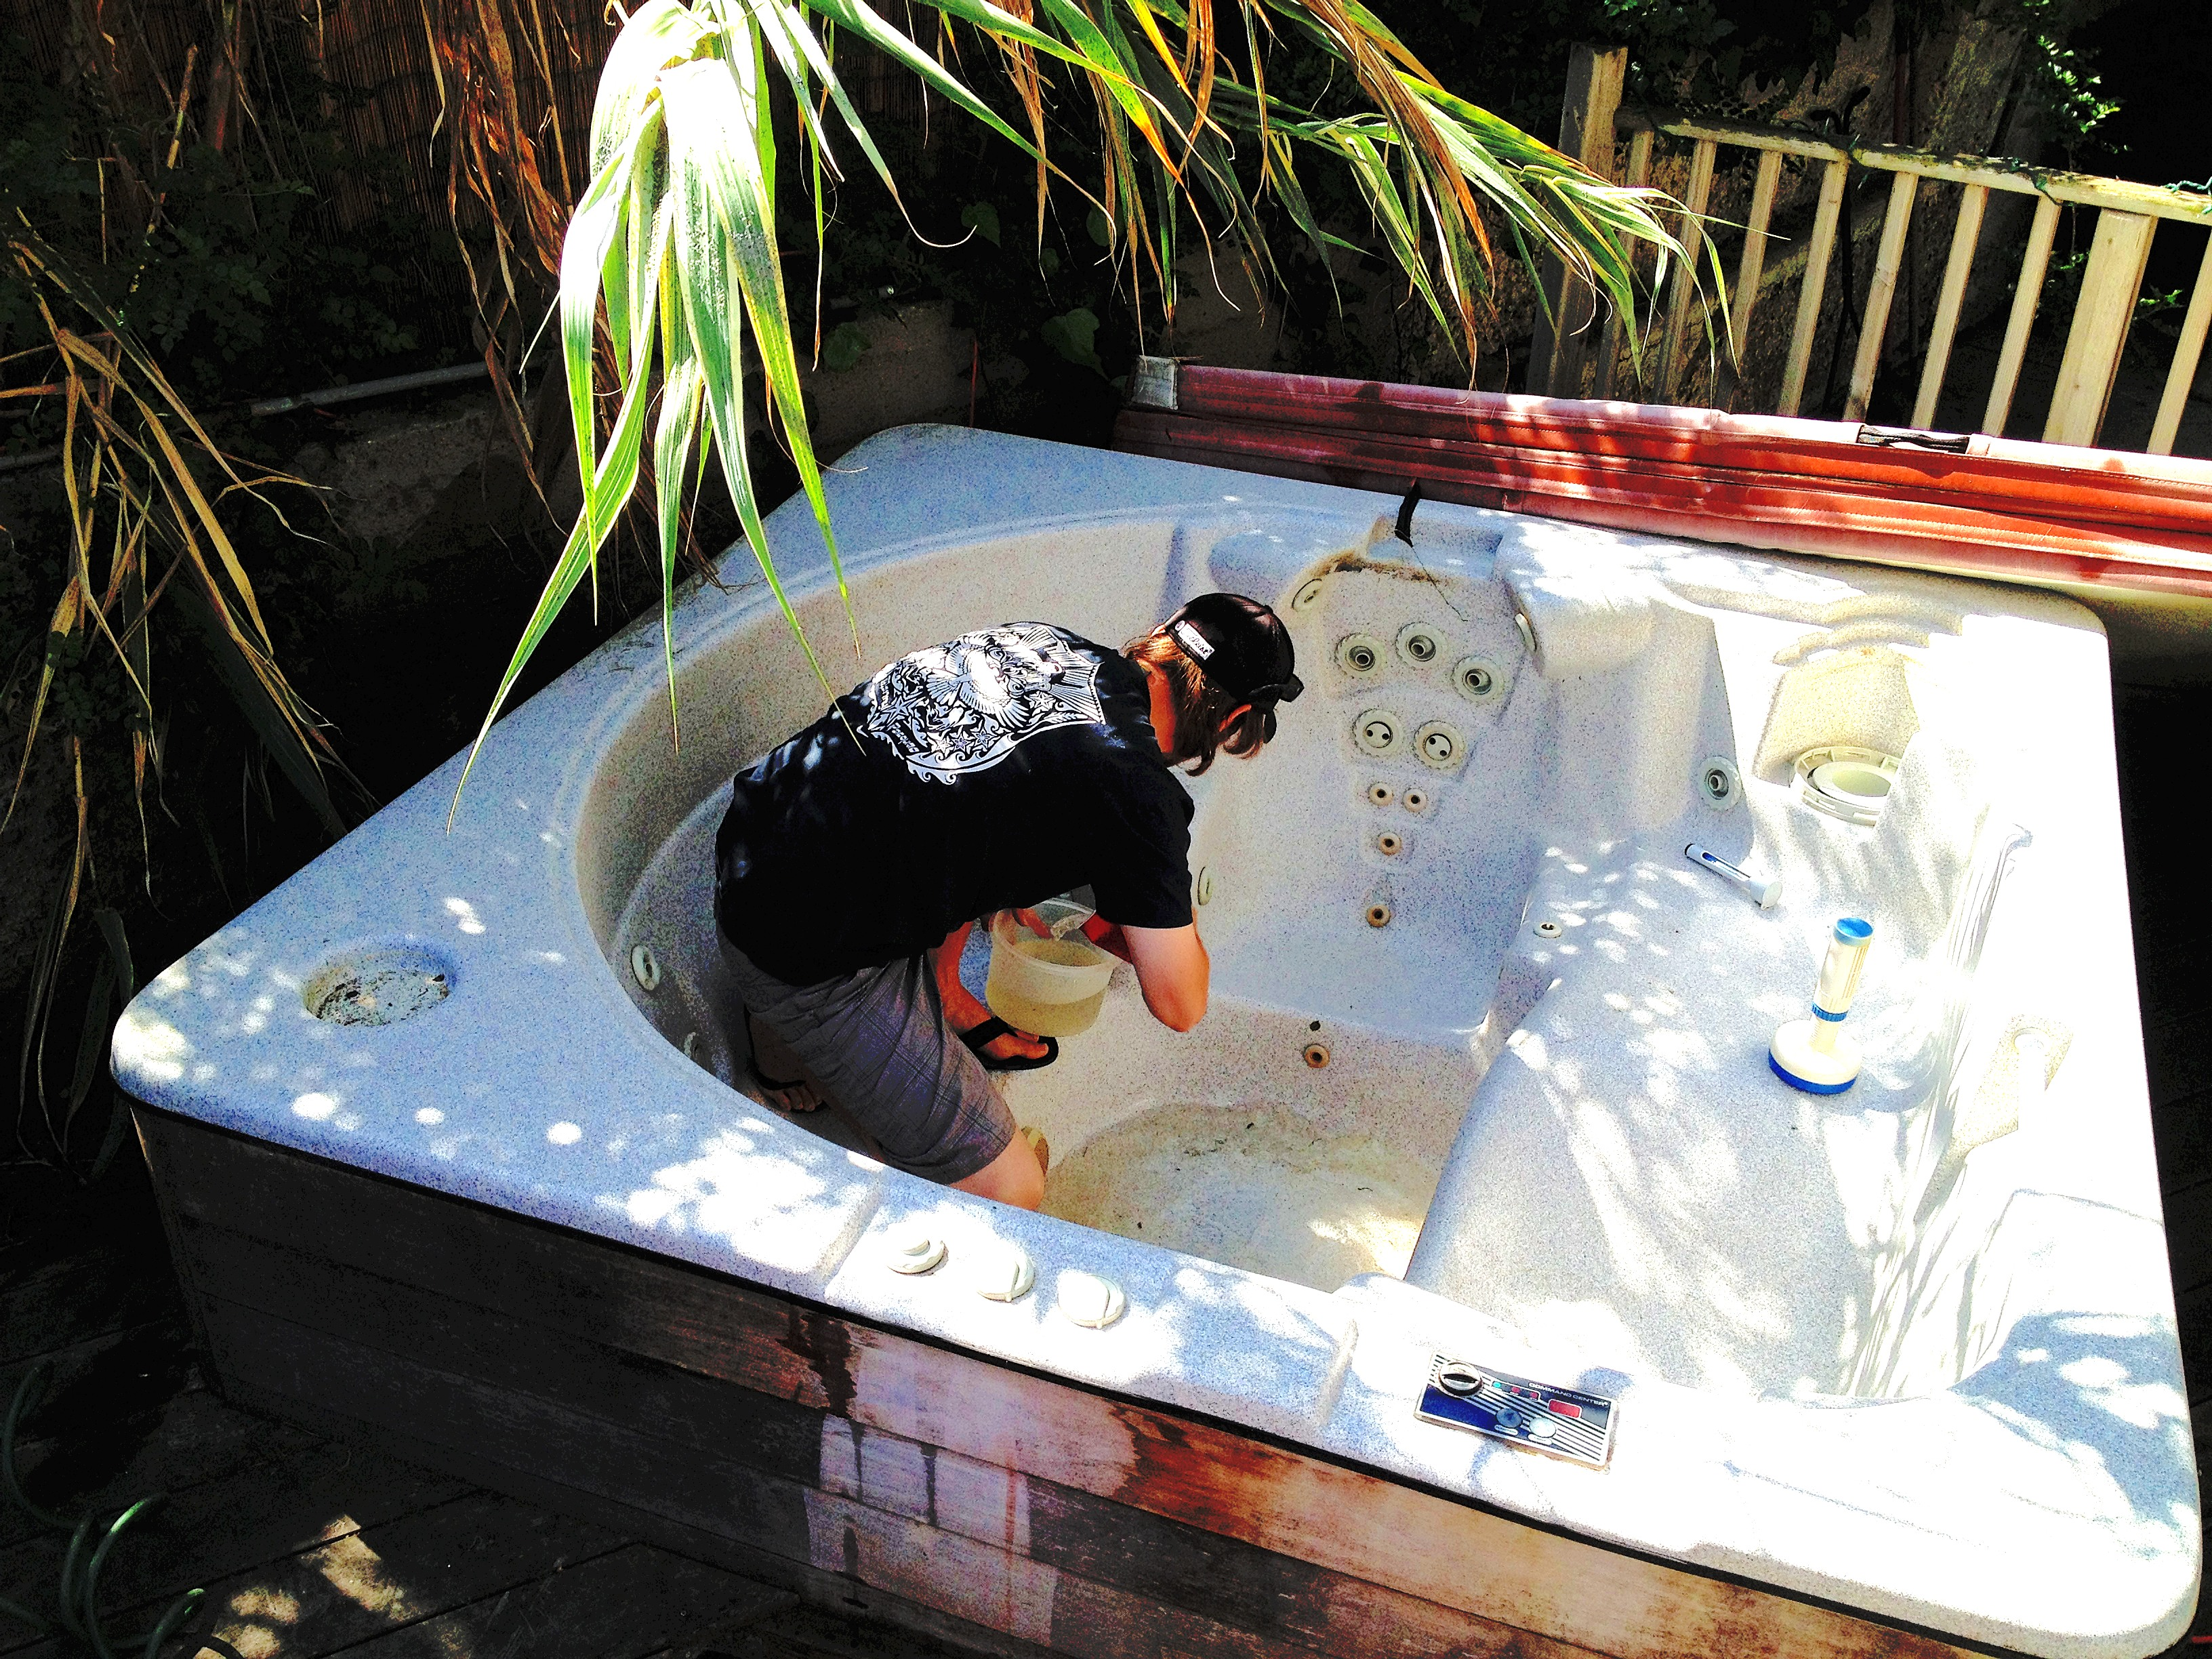 Topmost Concerns For Hot Tub Owners